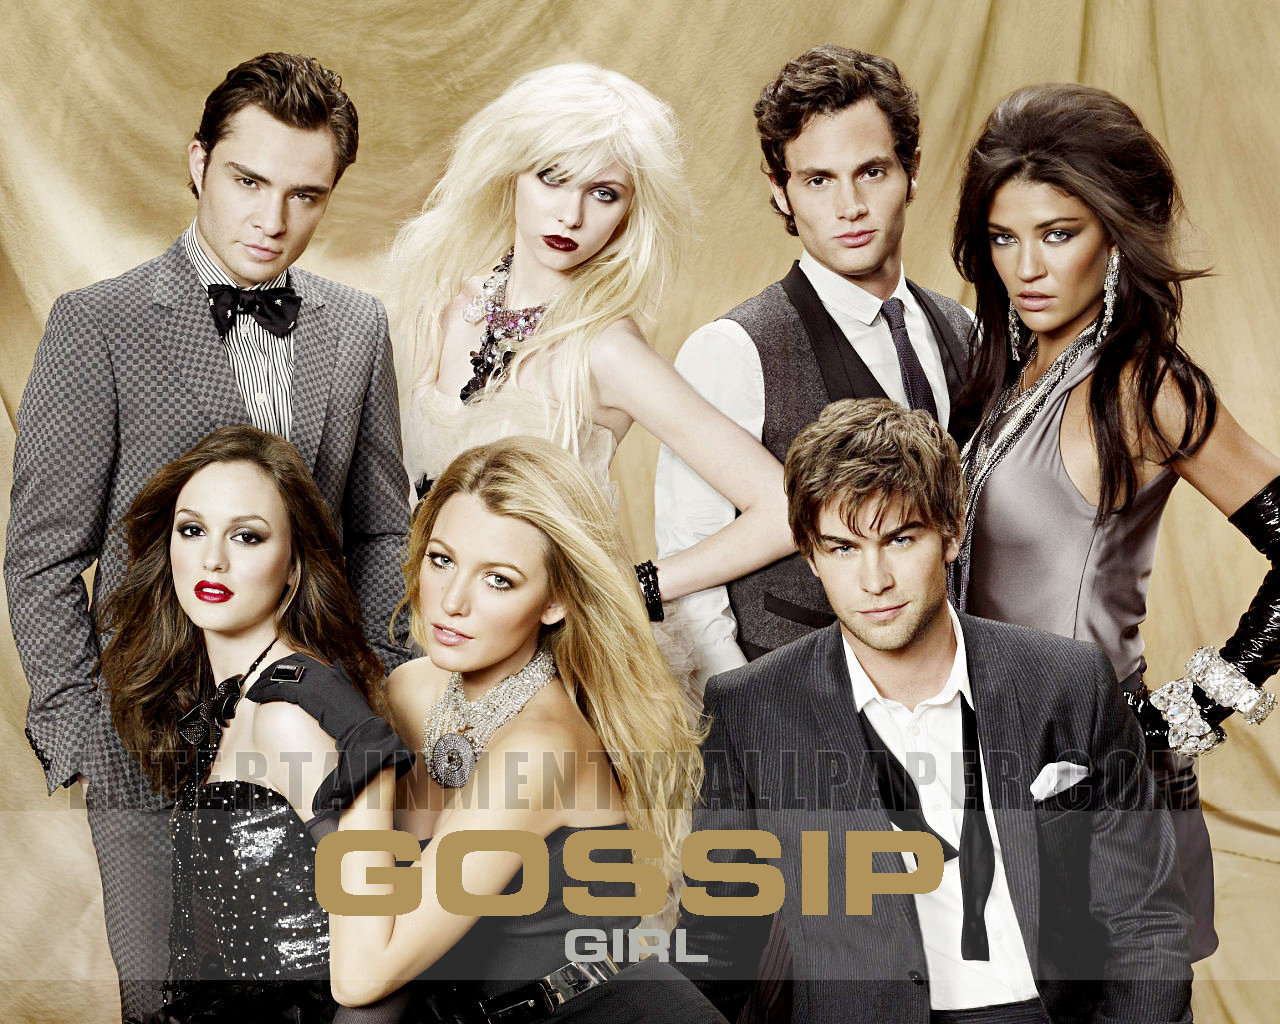 Gossip girl soundtrack s2e4: the ex-files | tunefind.